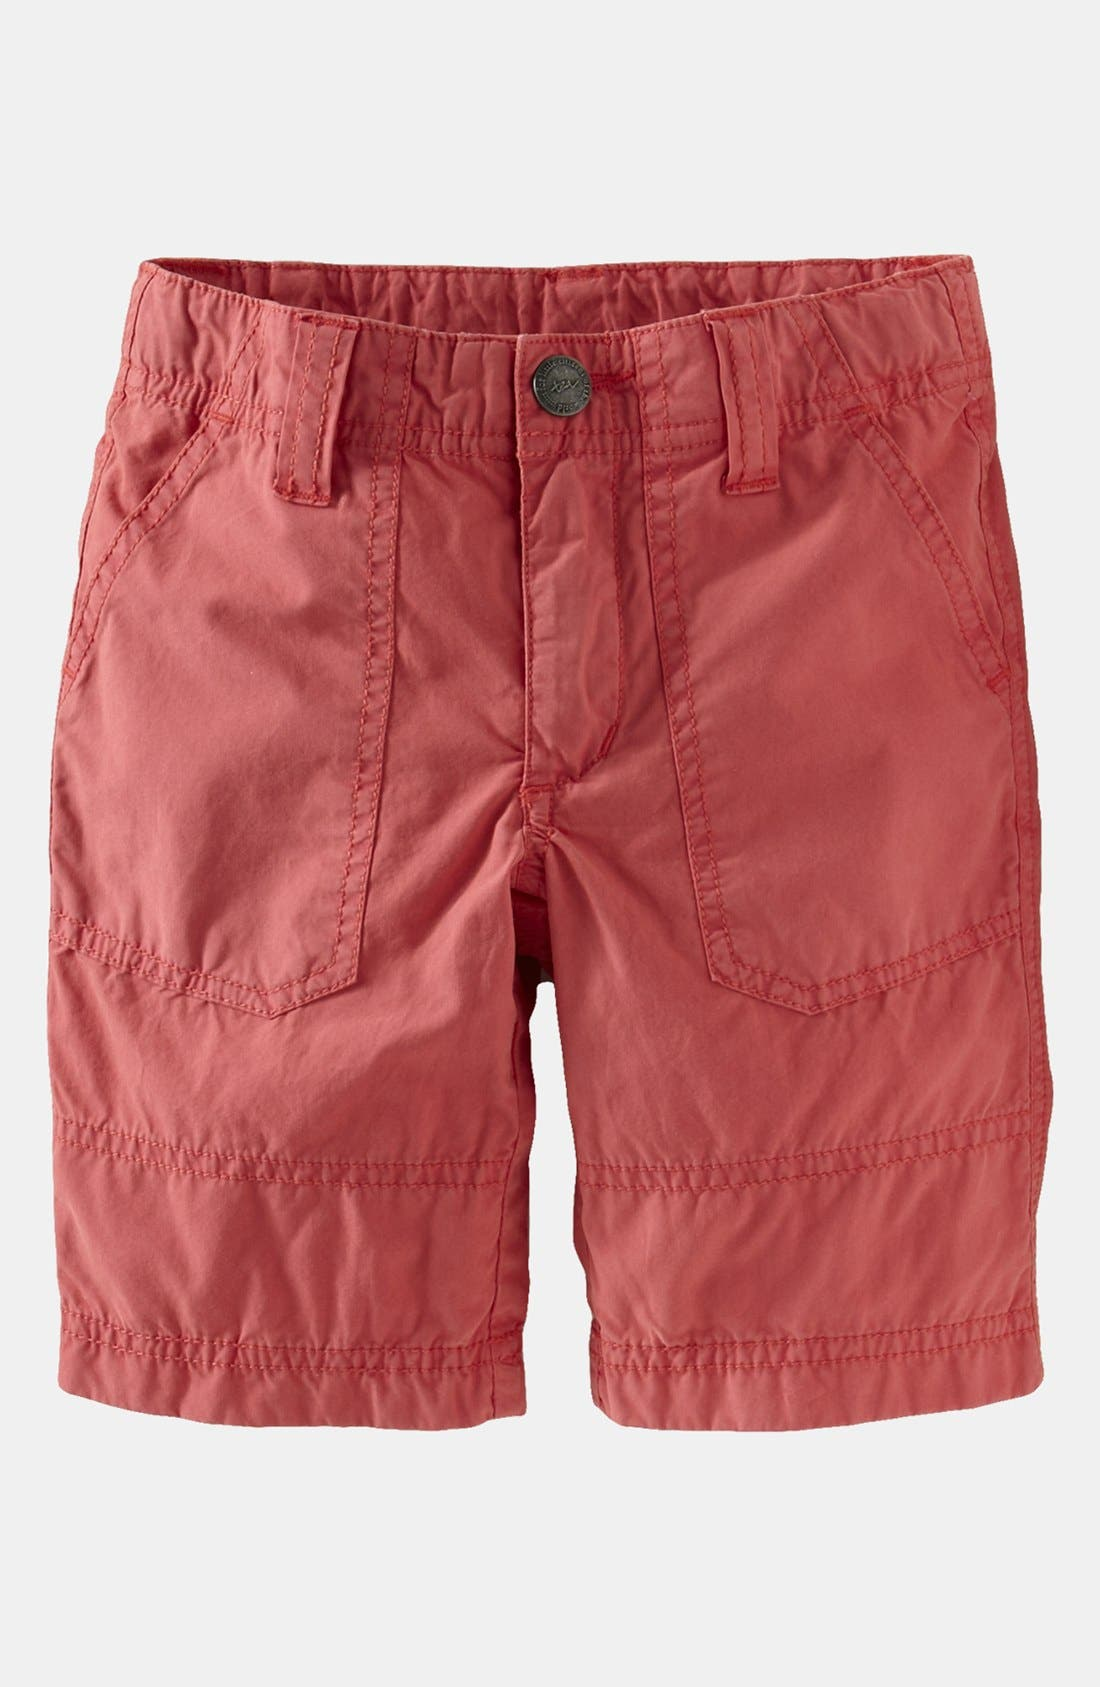 Alternate Image 1 Selected - Tea Collection 'Beach' Shorts (Toddler)